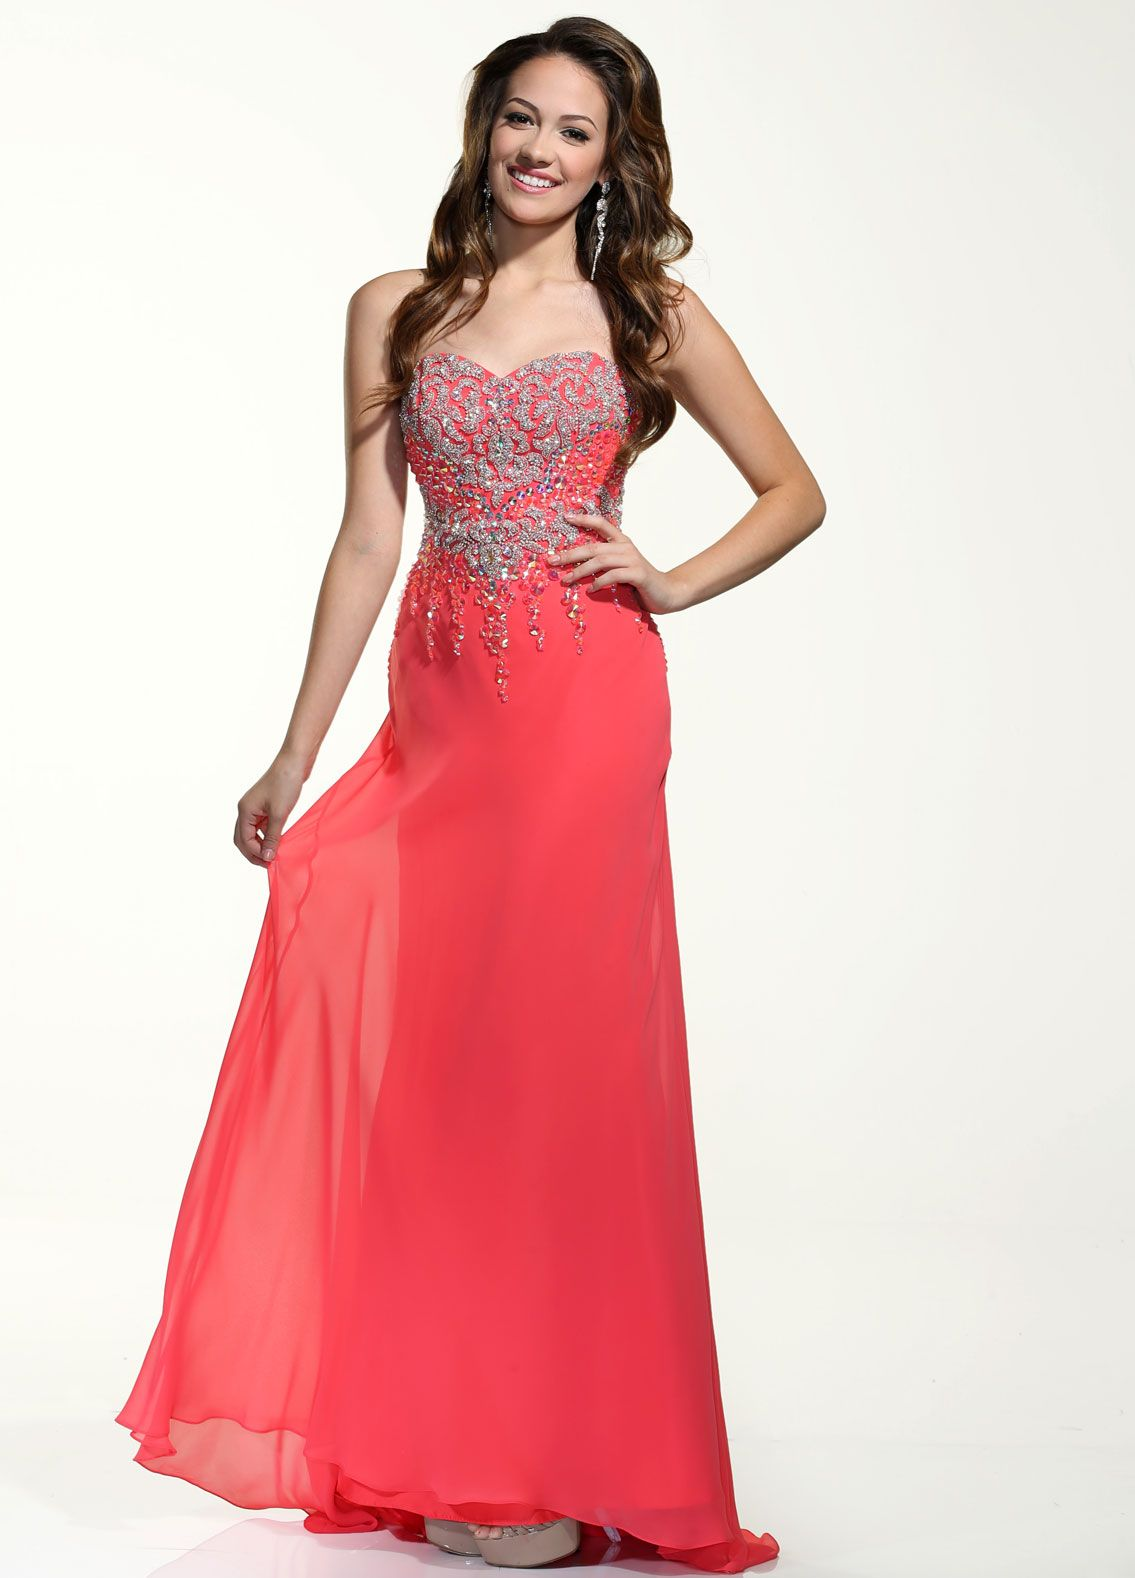 Pin by hannah verre on dressmania pinterest prom coral and fashion